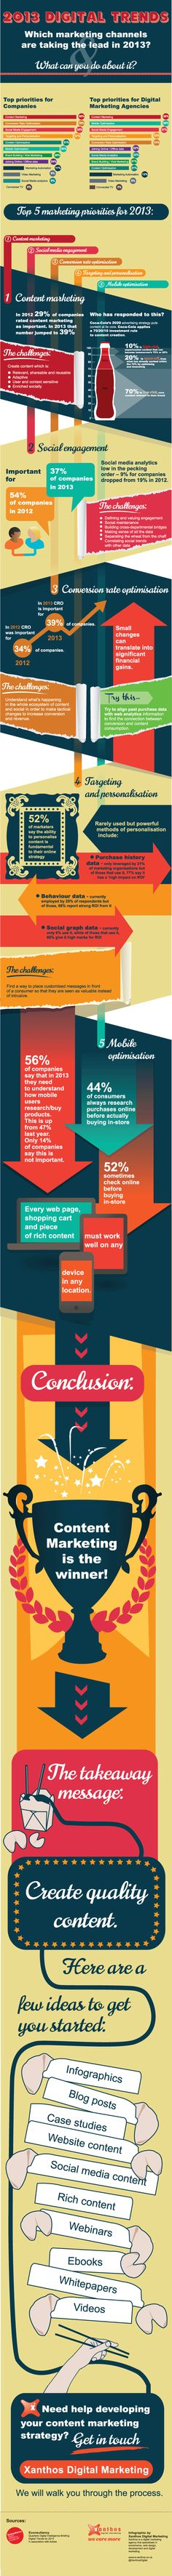 2013 digital trends #infographic